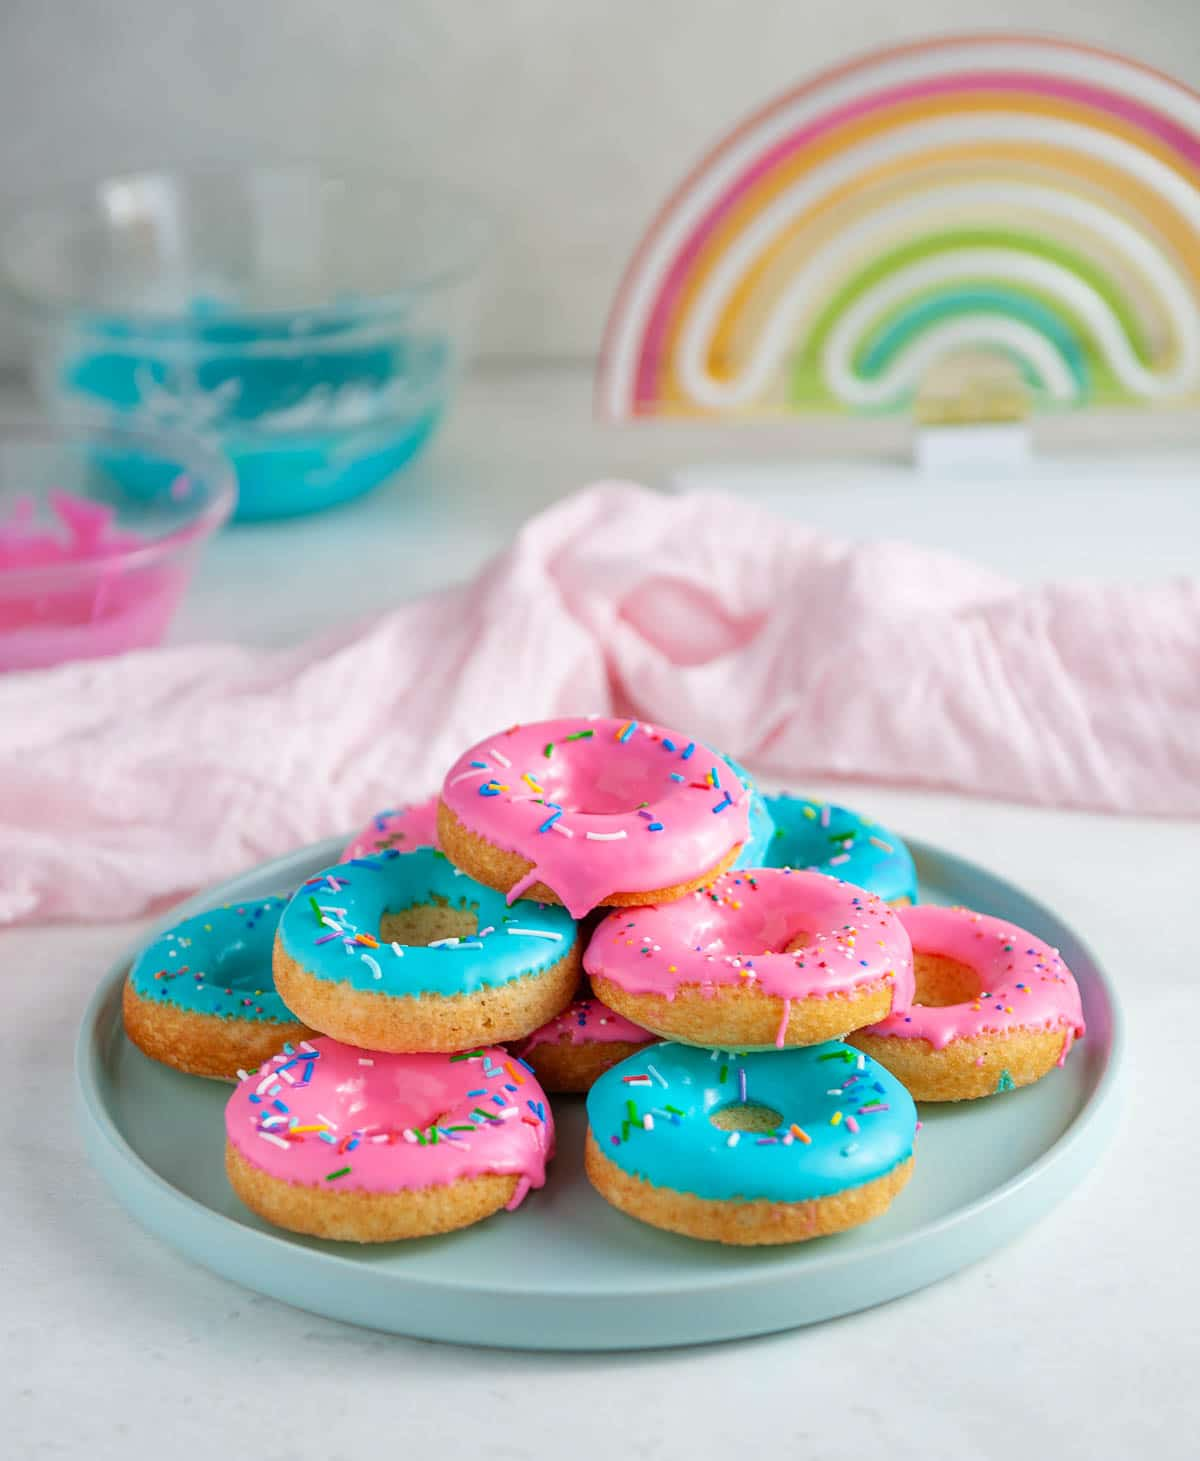 pink and blue donuts on a blue plate